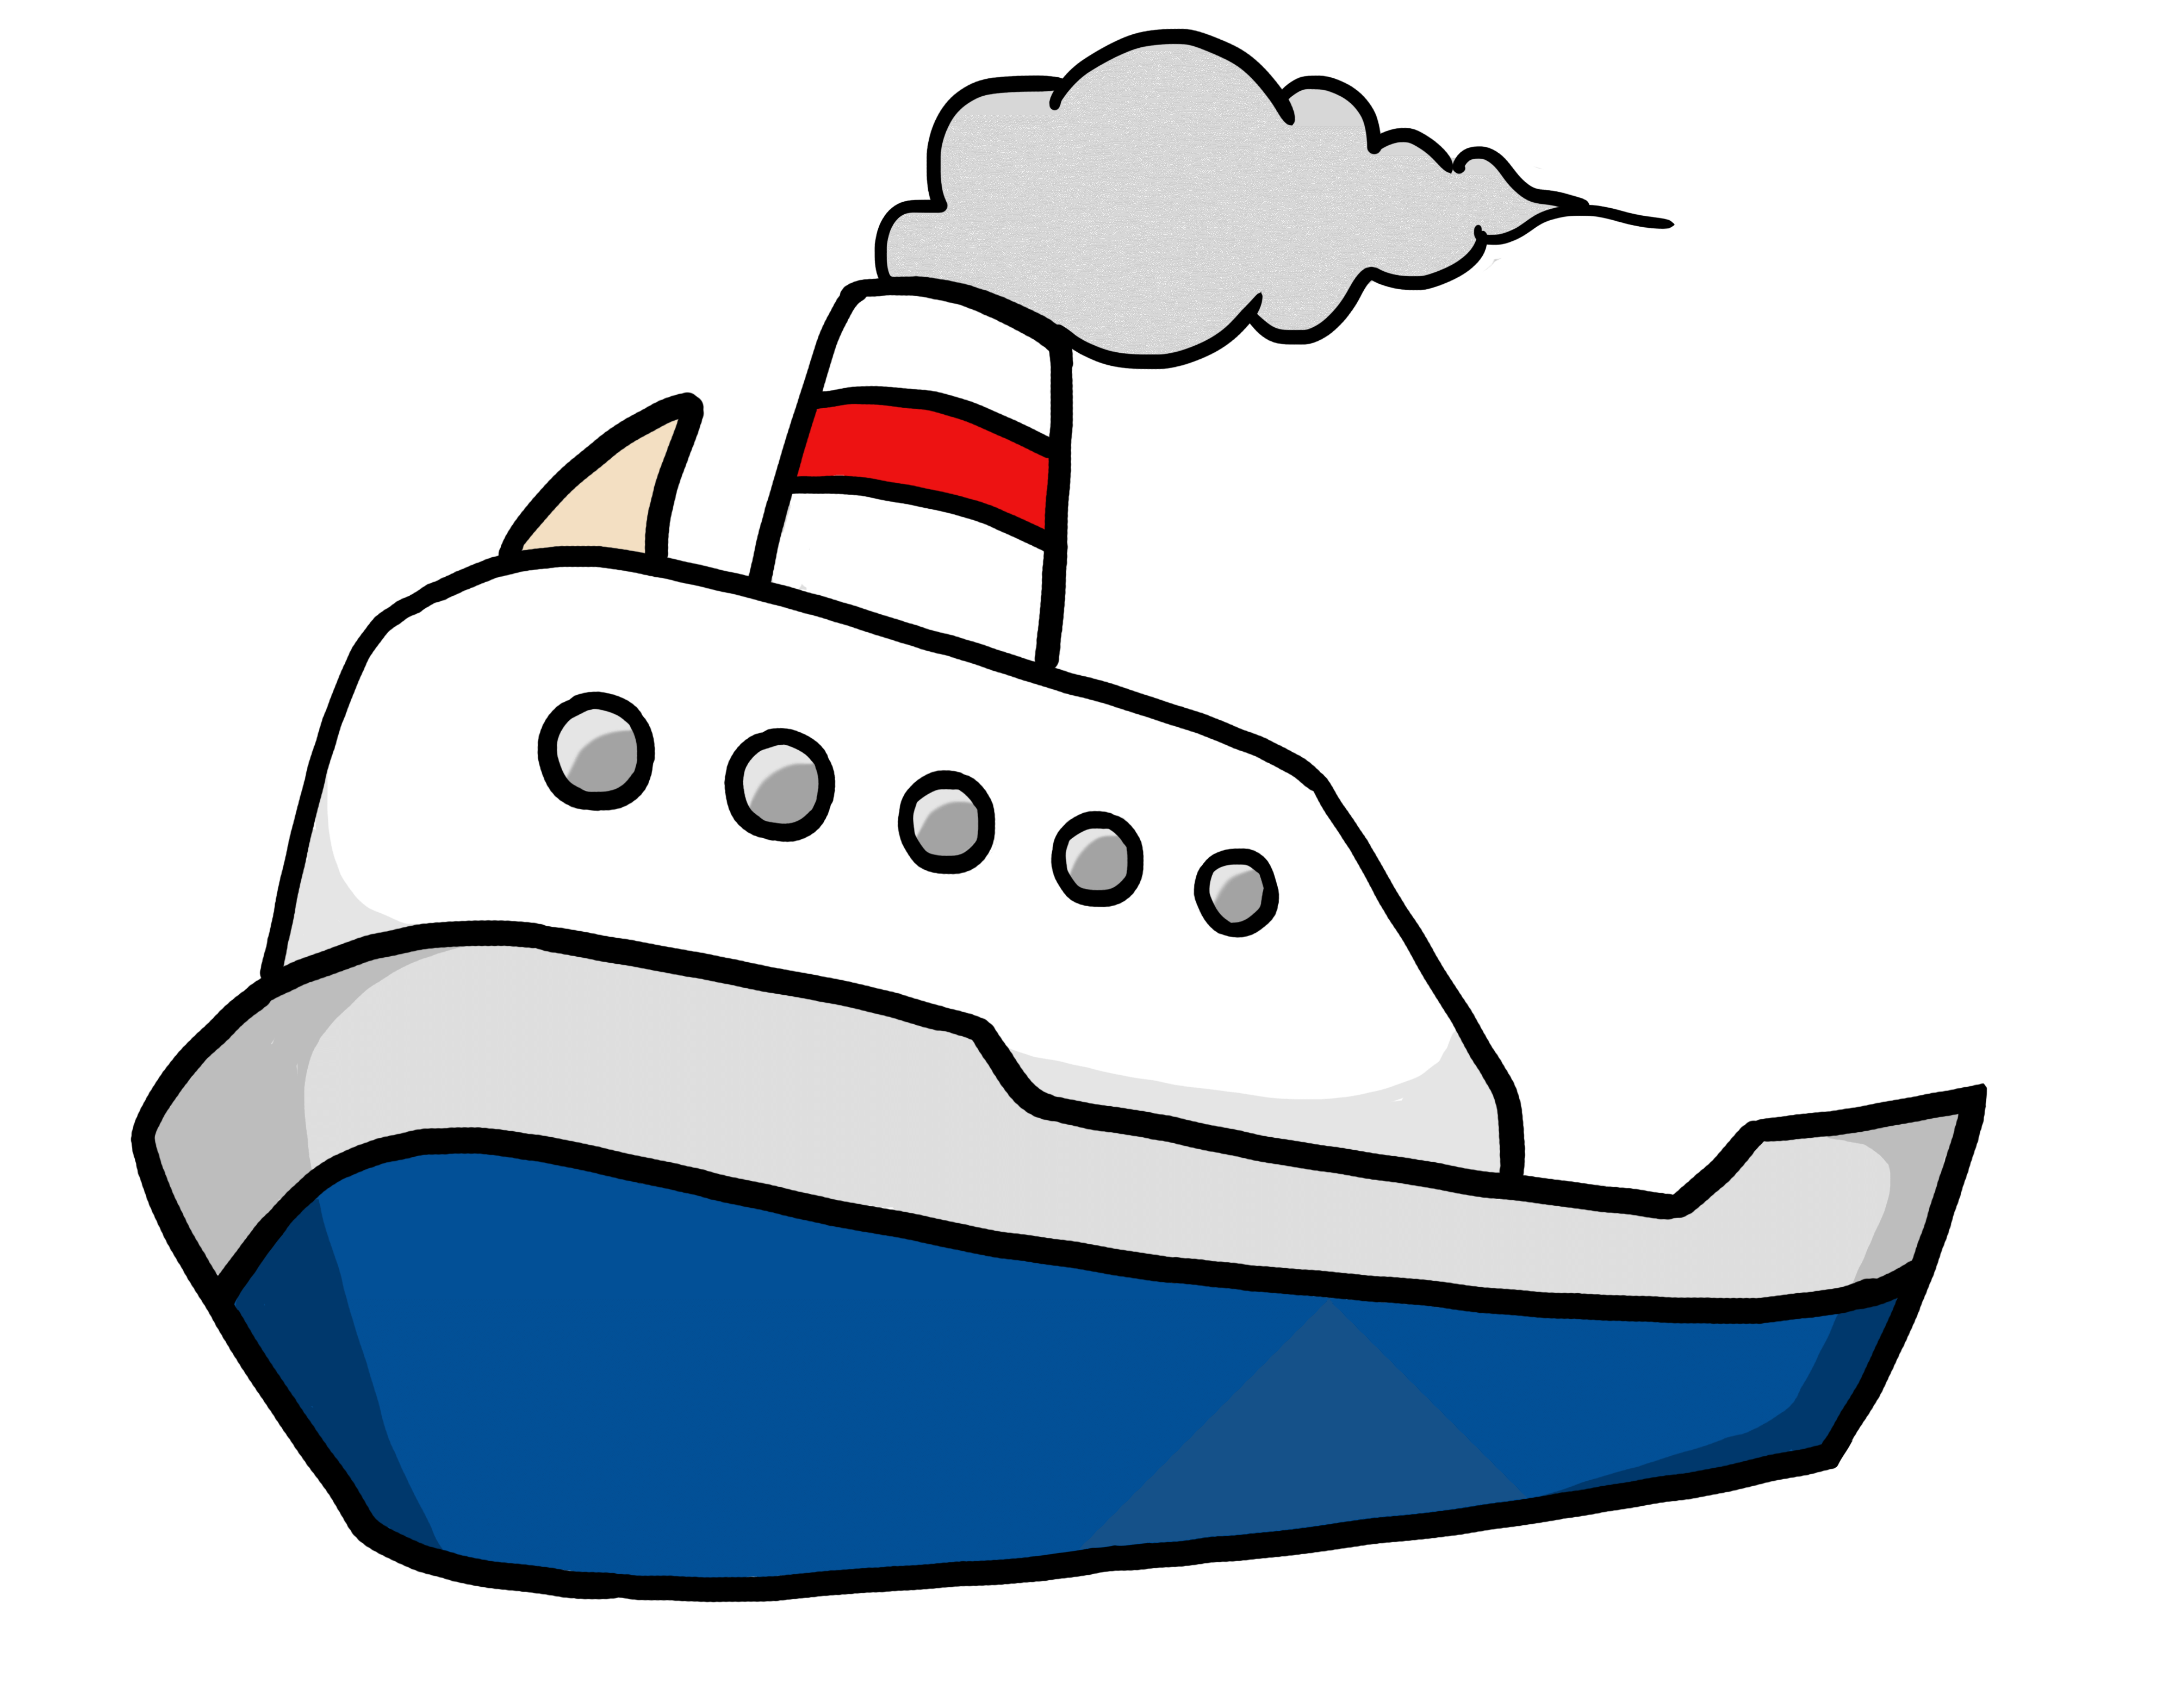 Speed clip art vector black and white library Speed Boat Silhouette at GetDrawings.com | Free for personal use ... vector black and white library